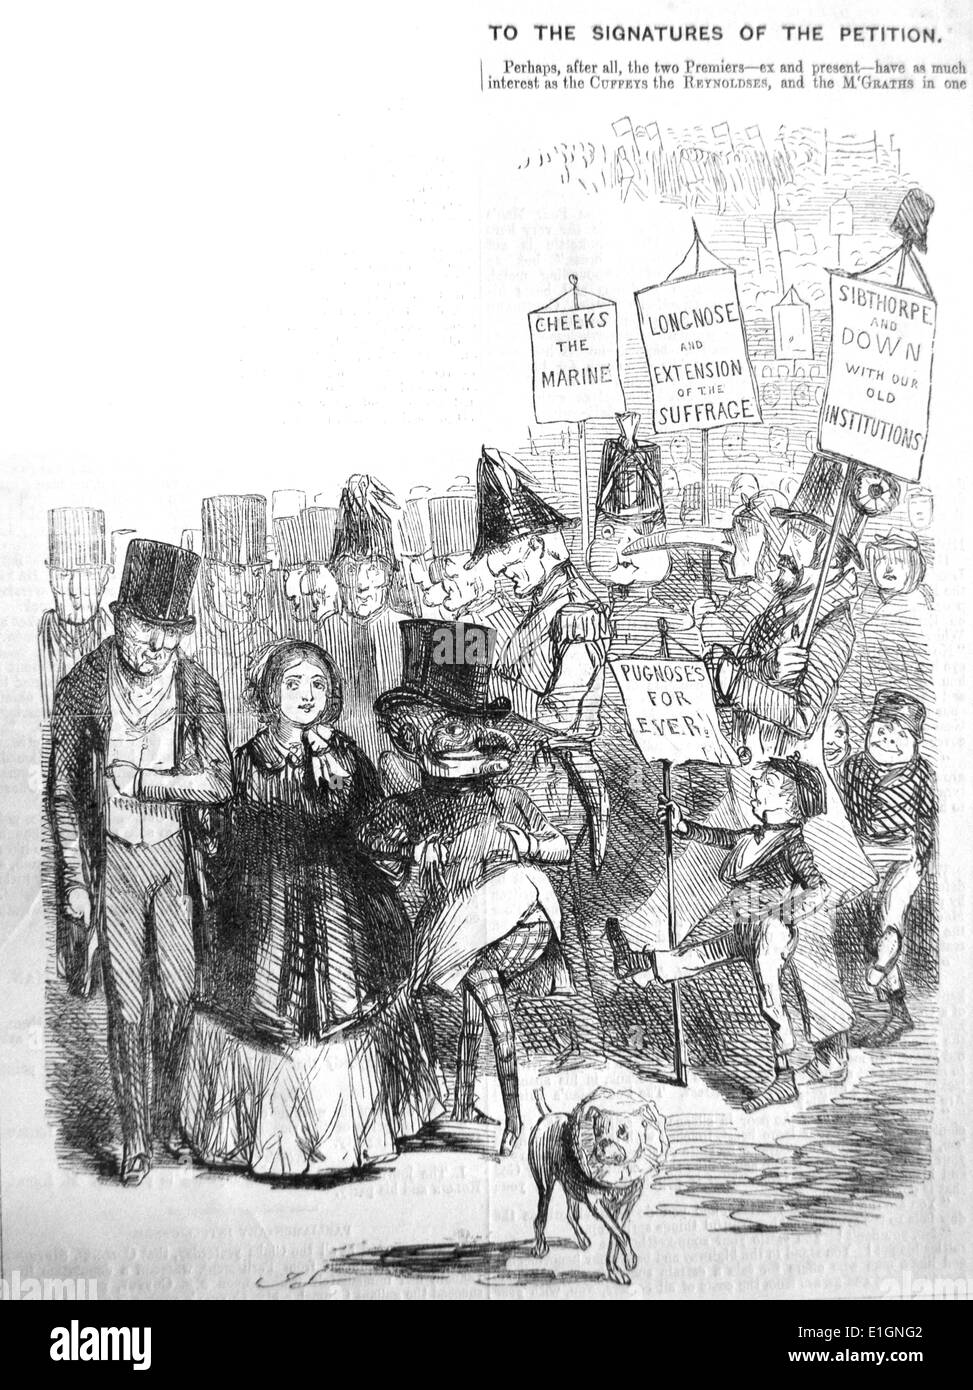 How the Chartist procession might have looked - Stock Image